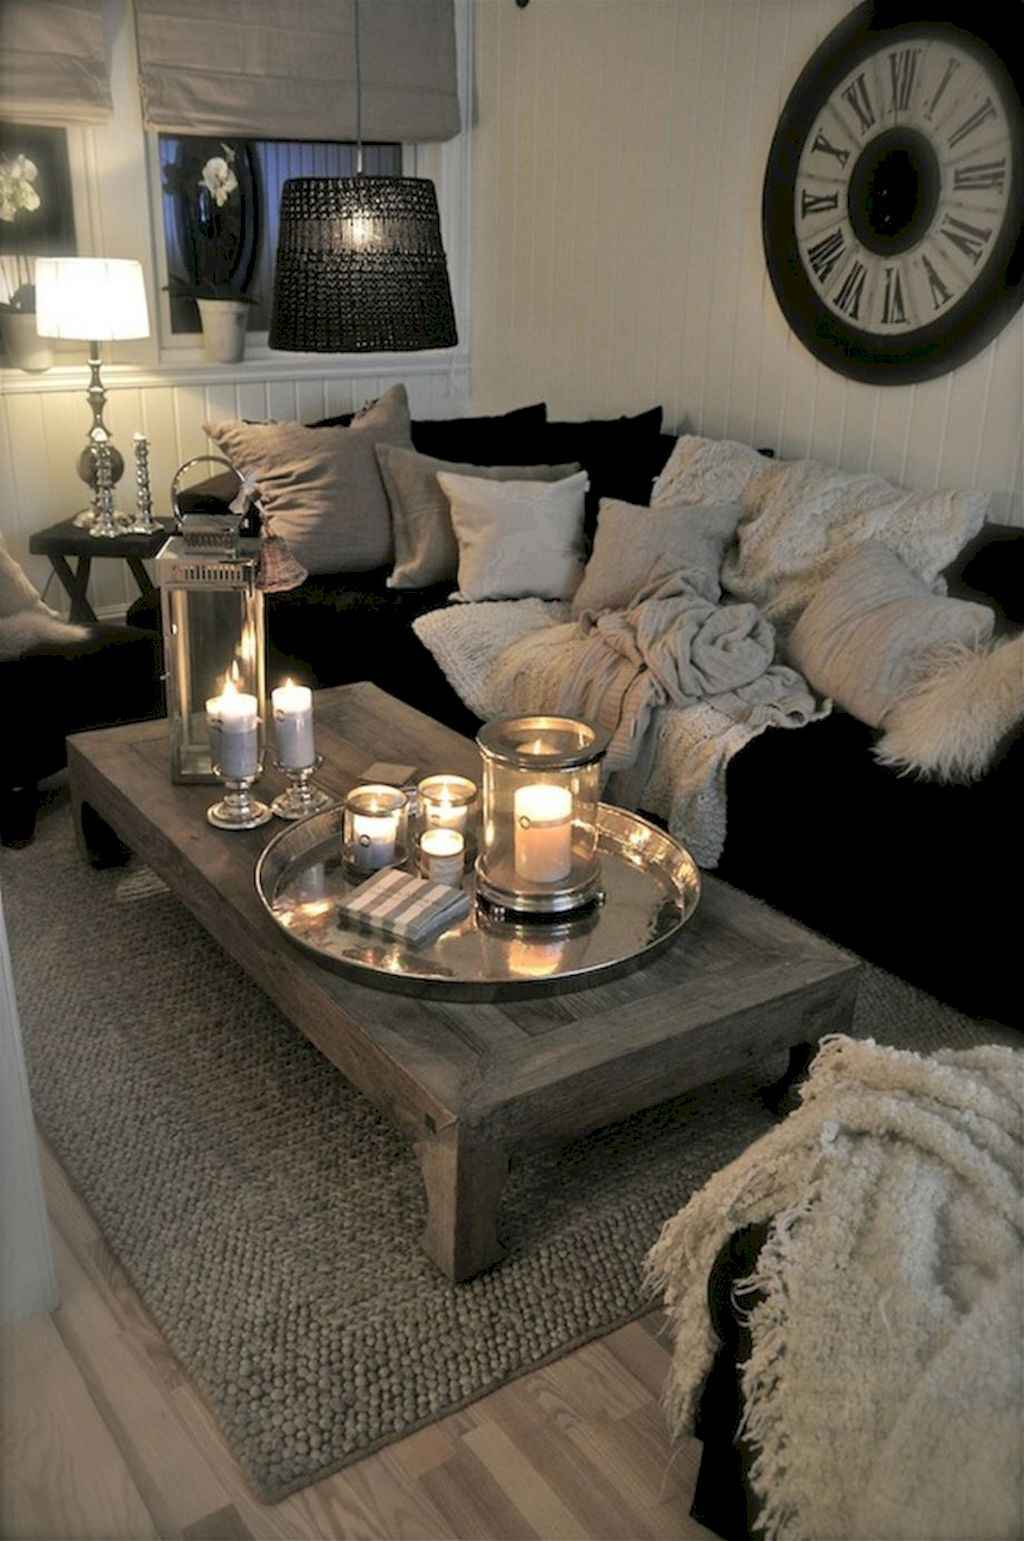 Couples first apartment decorating ideas (103)